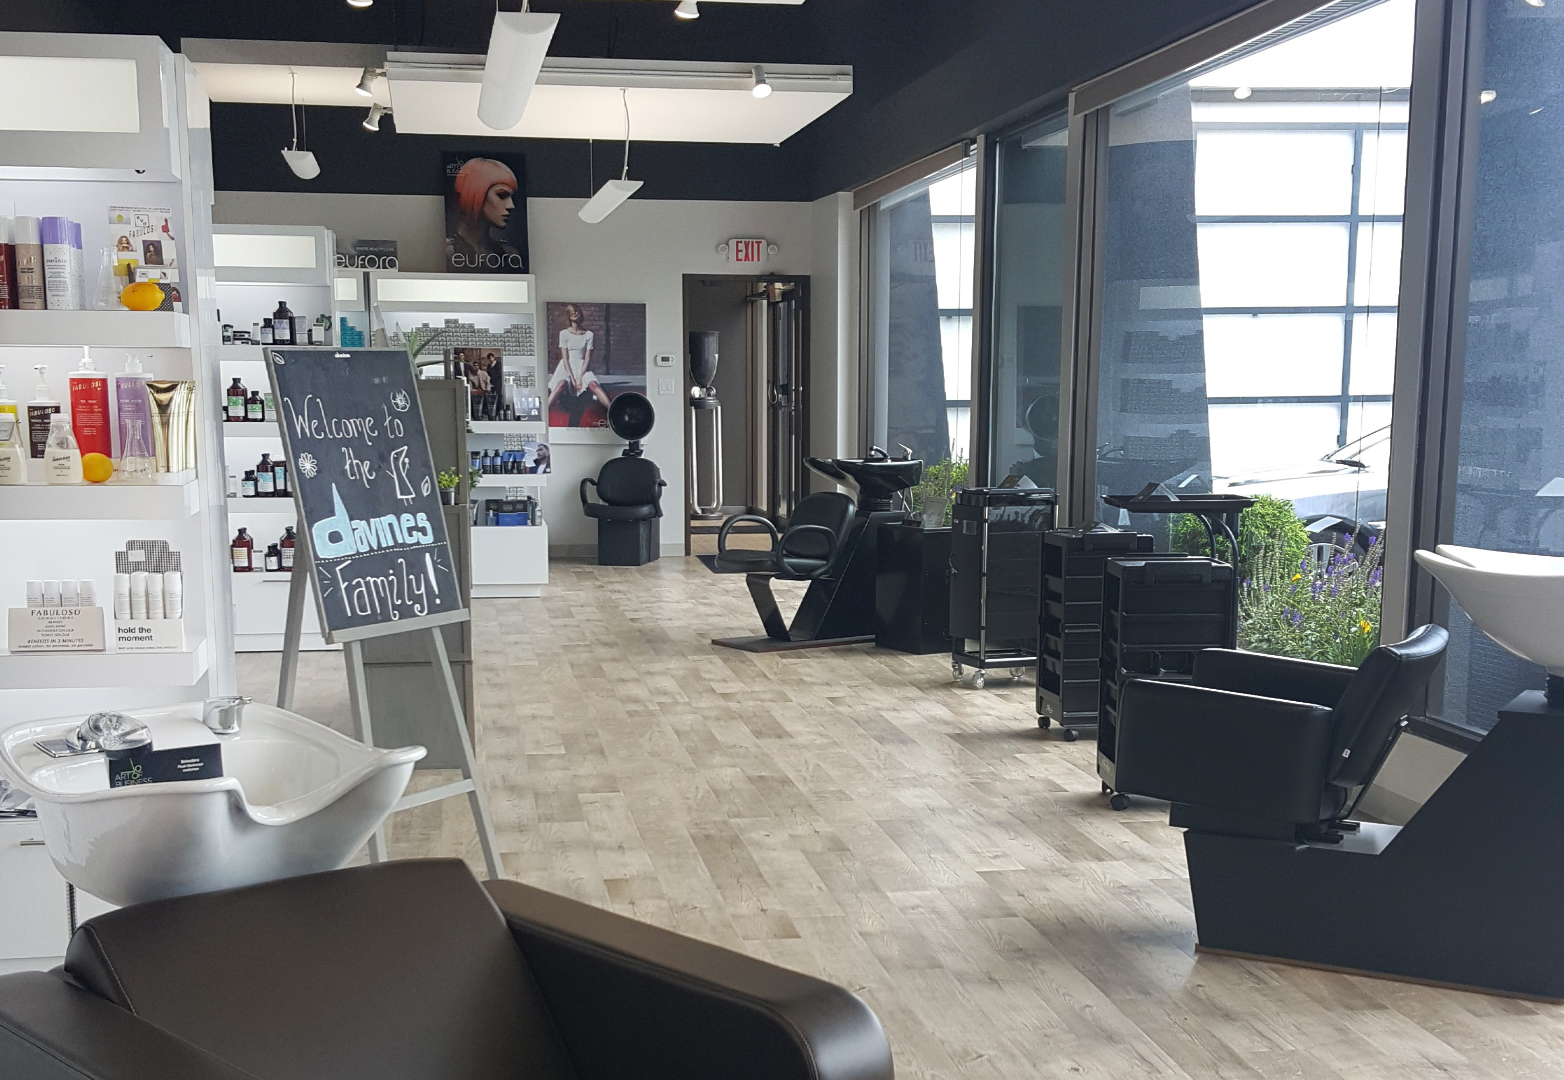 Hair salon with salon furniture along the windows including shampoo chairs and beauty salon trolley carts.